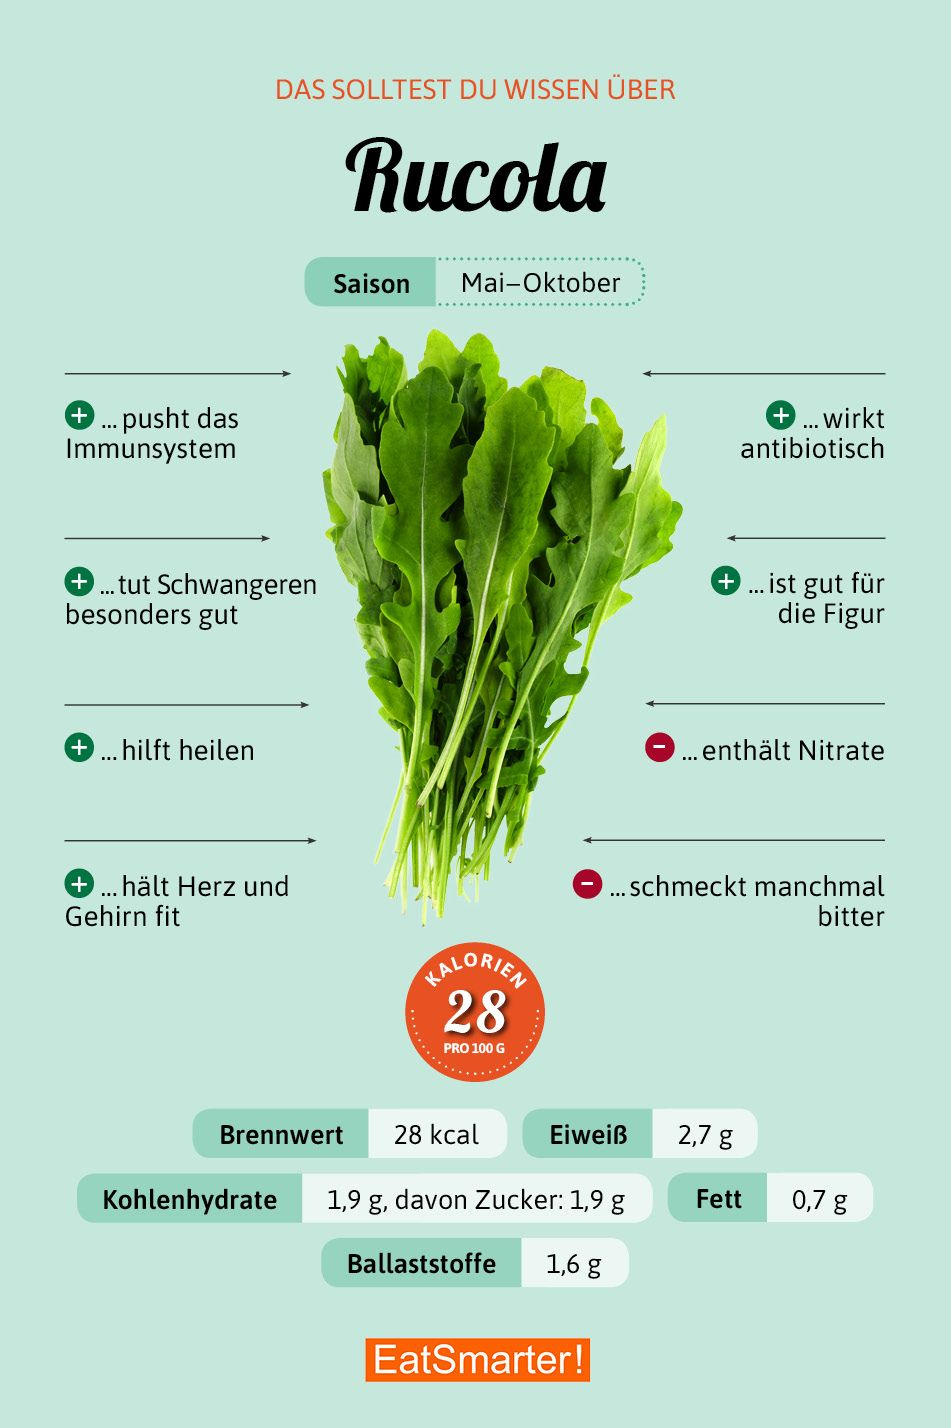 darum ist rucola so gesund und lecker infografiken pinterest ern hrung lebensmittel. Black Bedroom Furniture Sets. Home Design Ideas